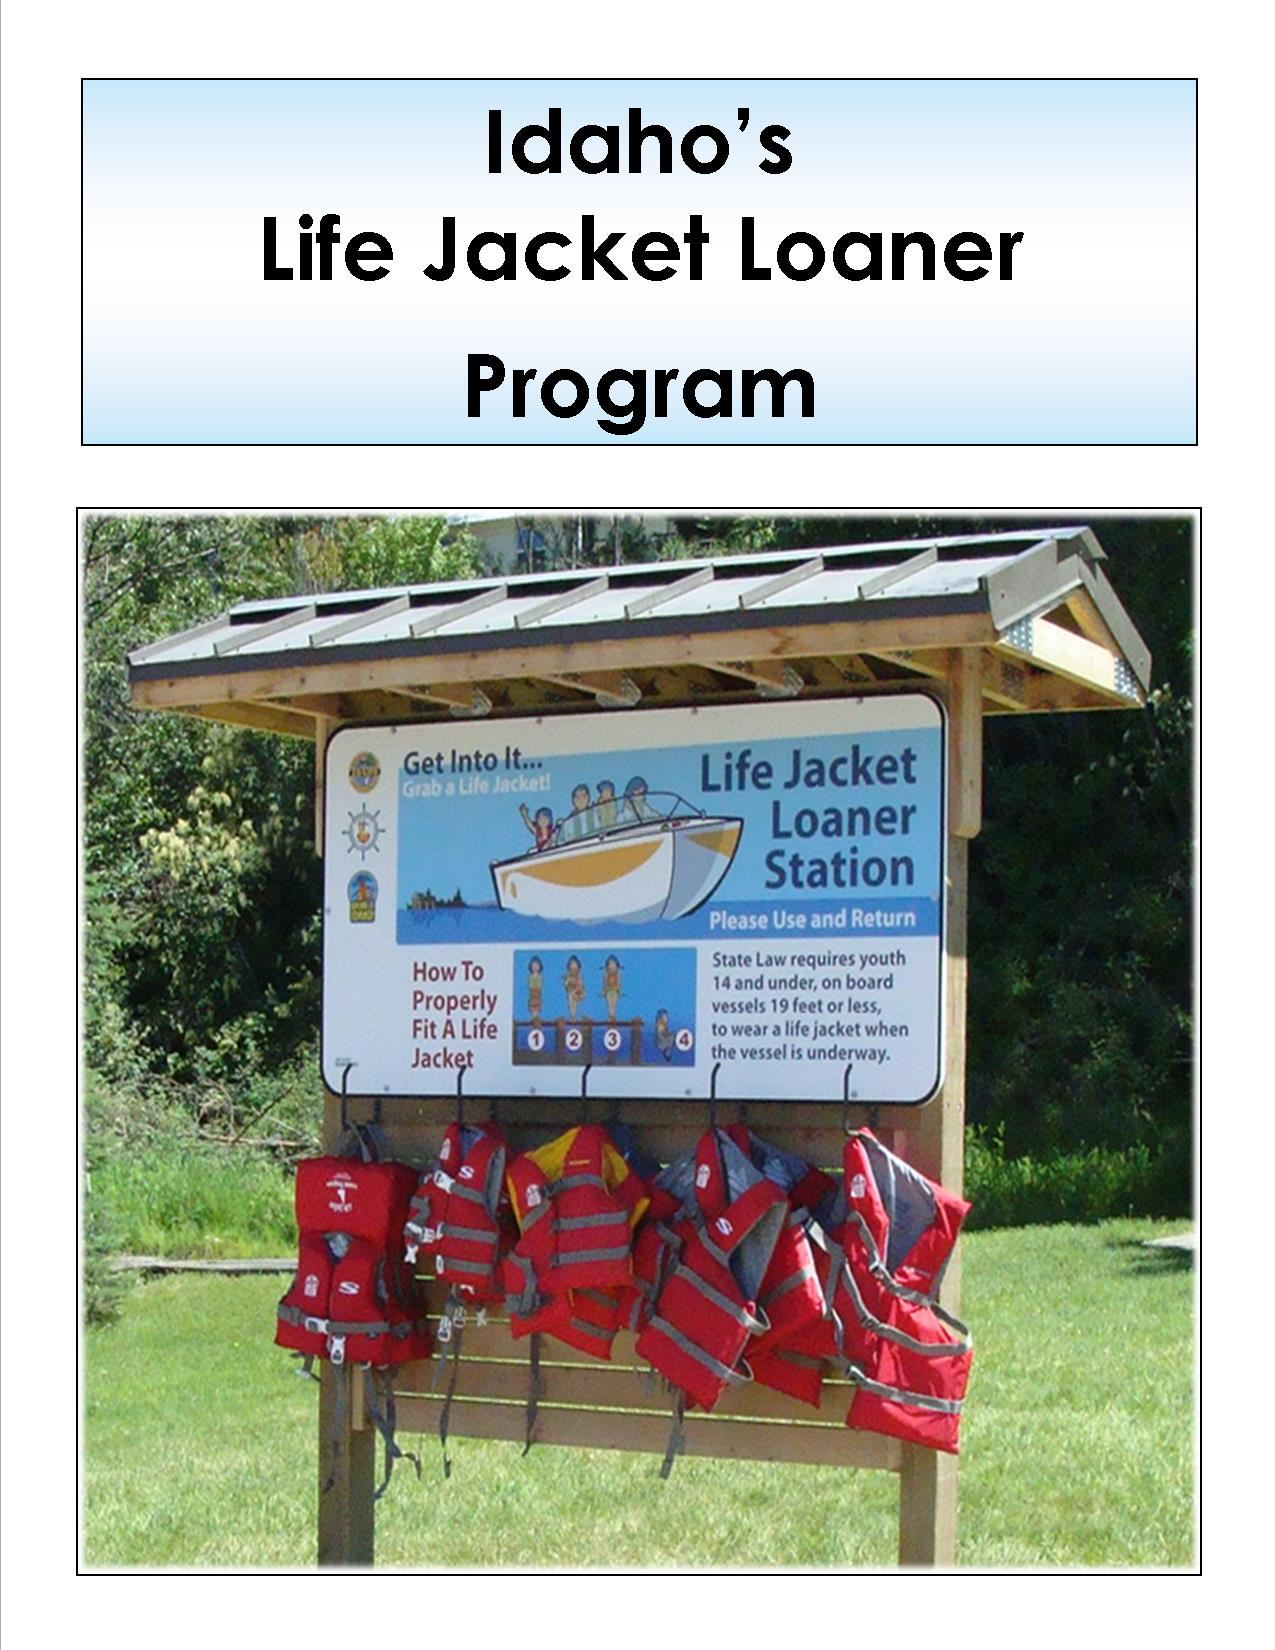 Image and sign of a Life Jacket station